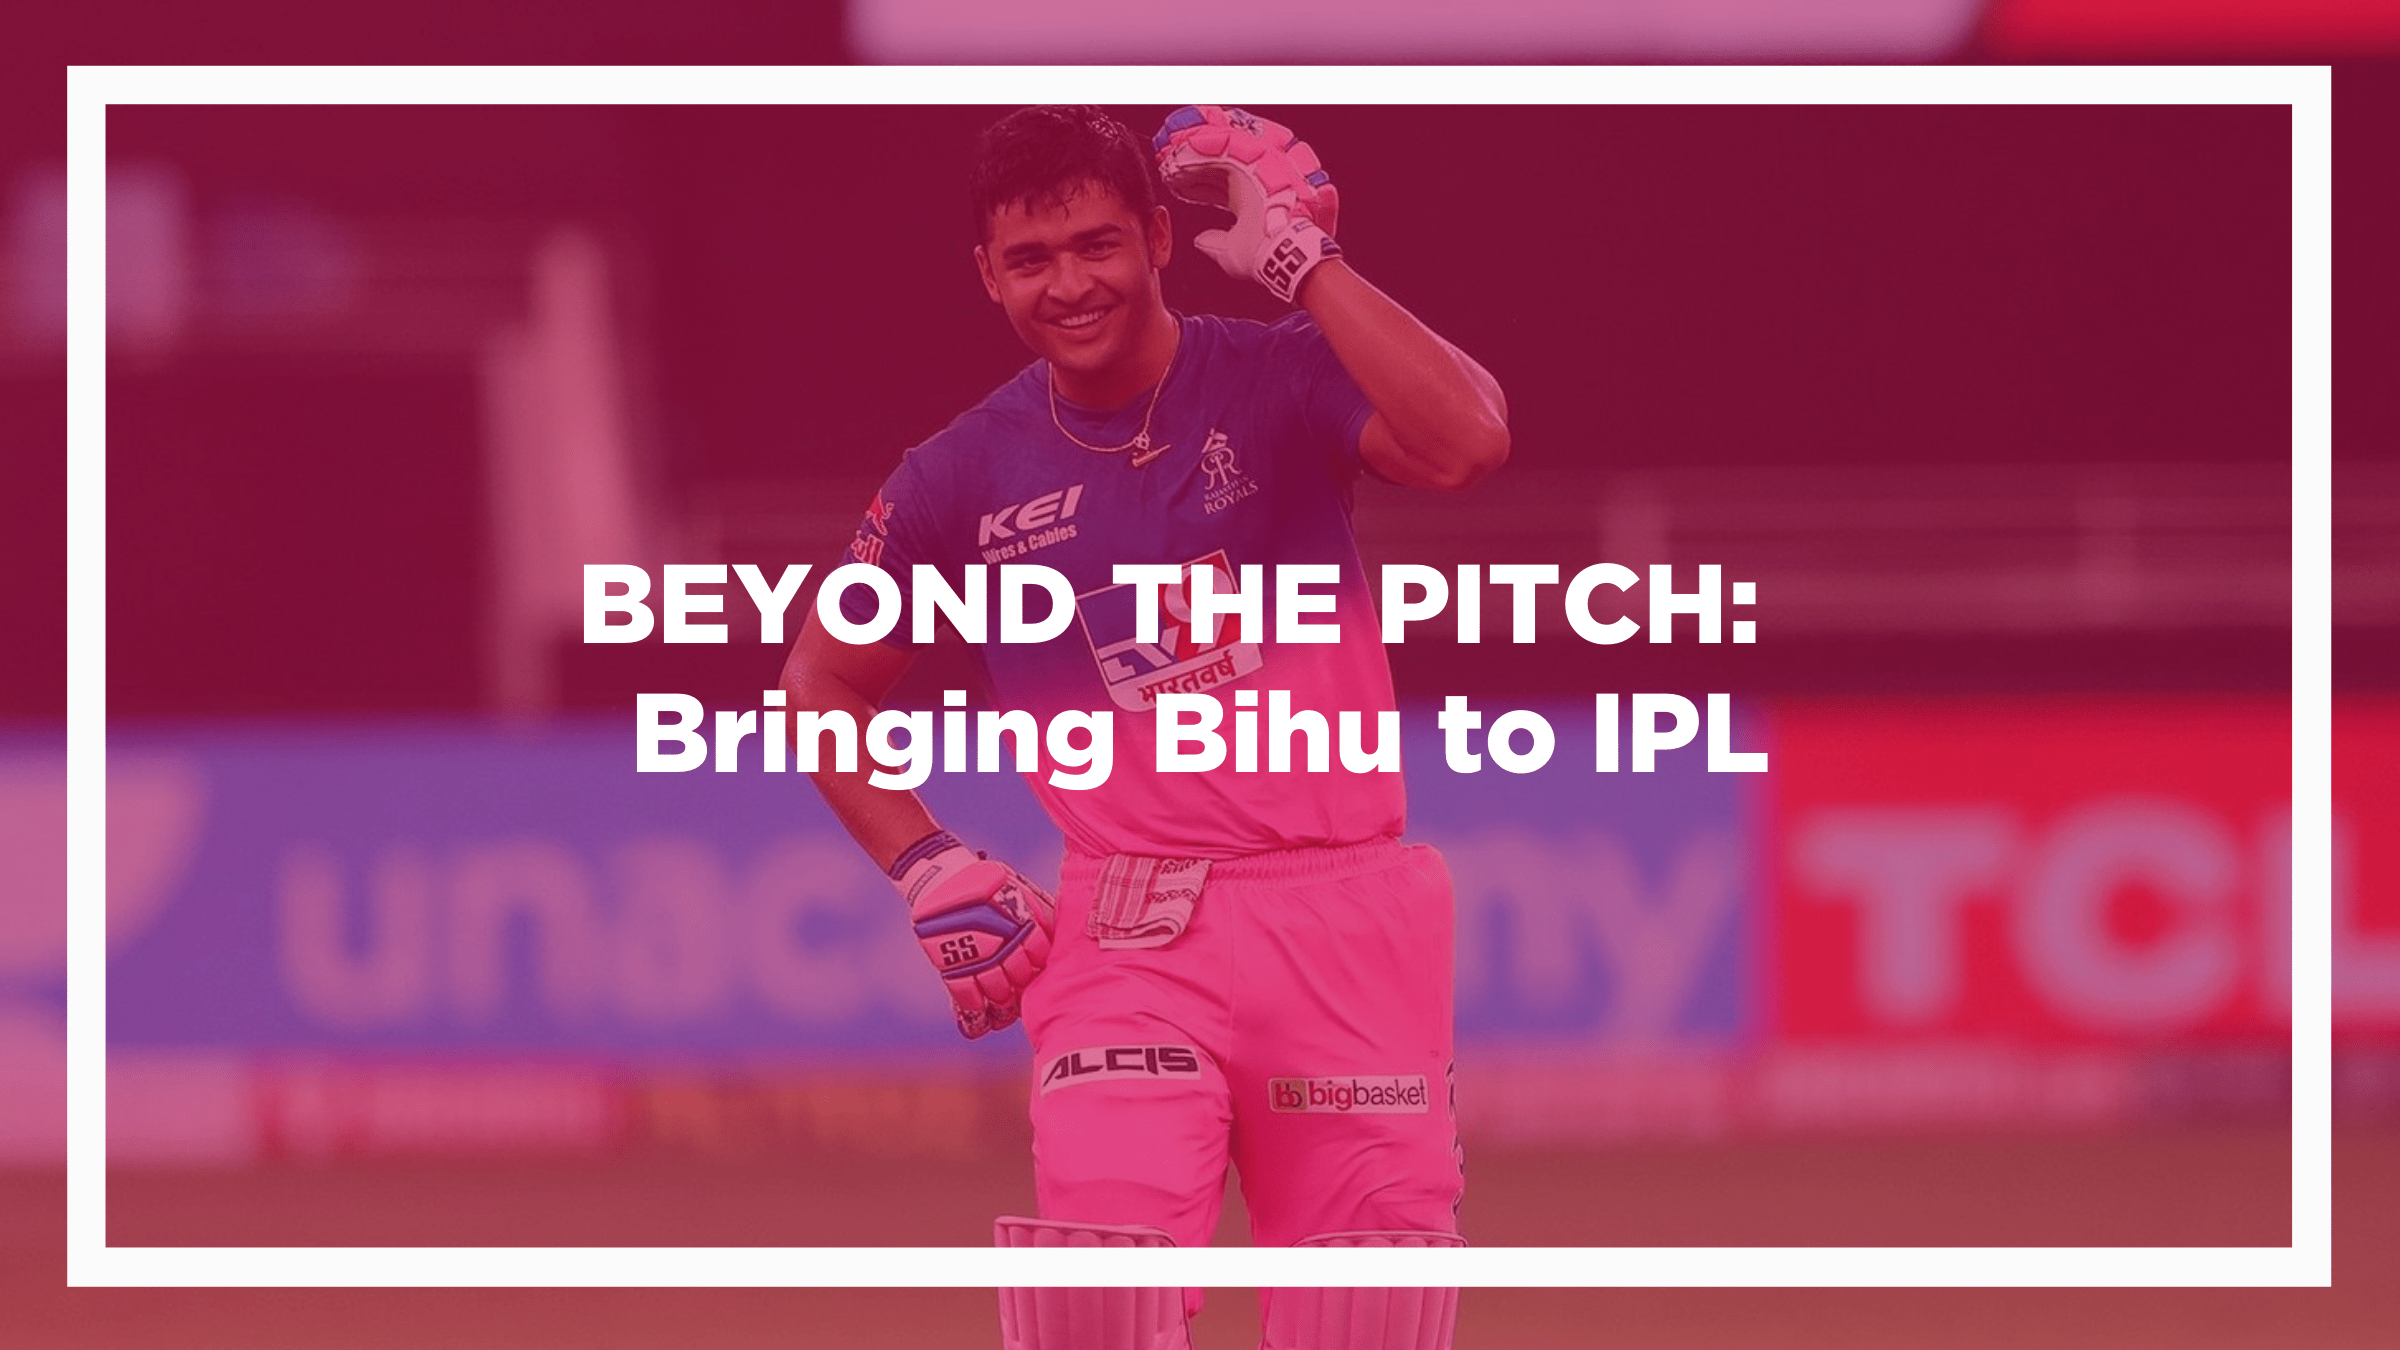 Bringing Bihu to IPL